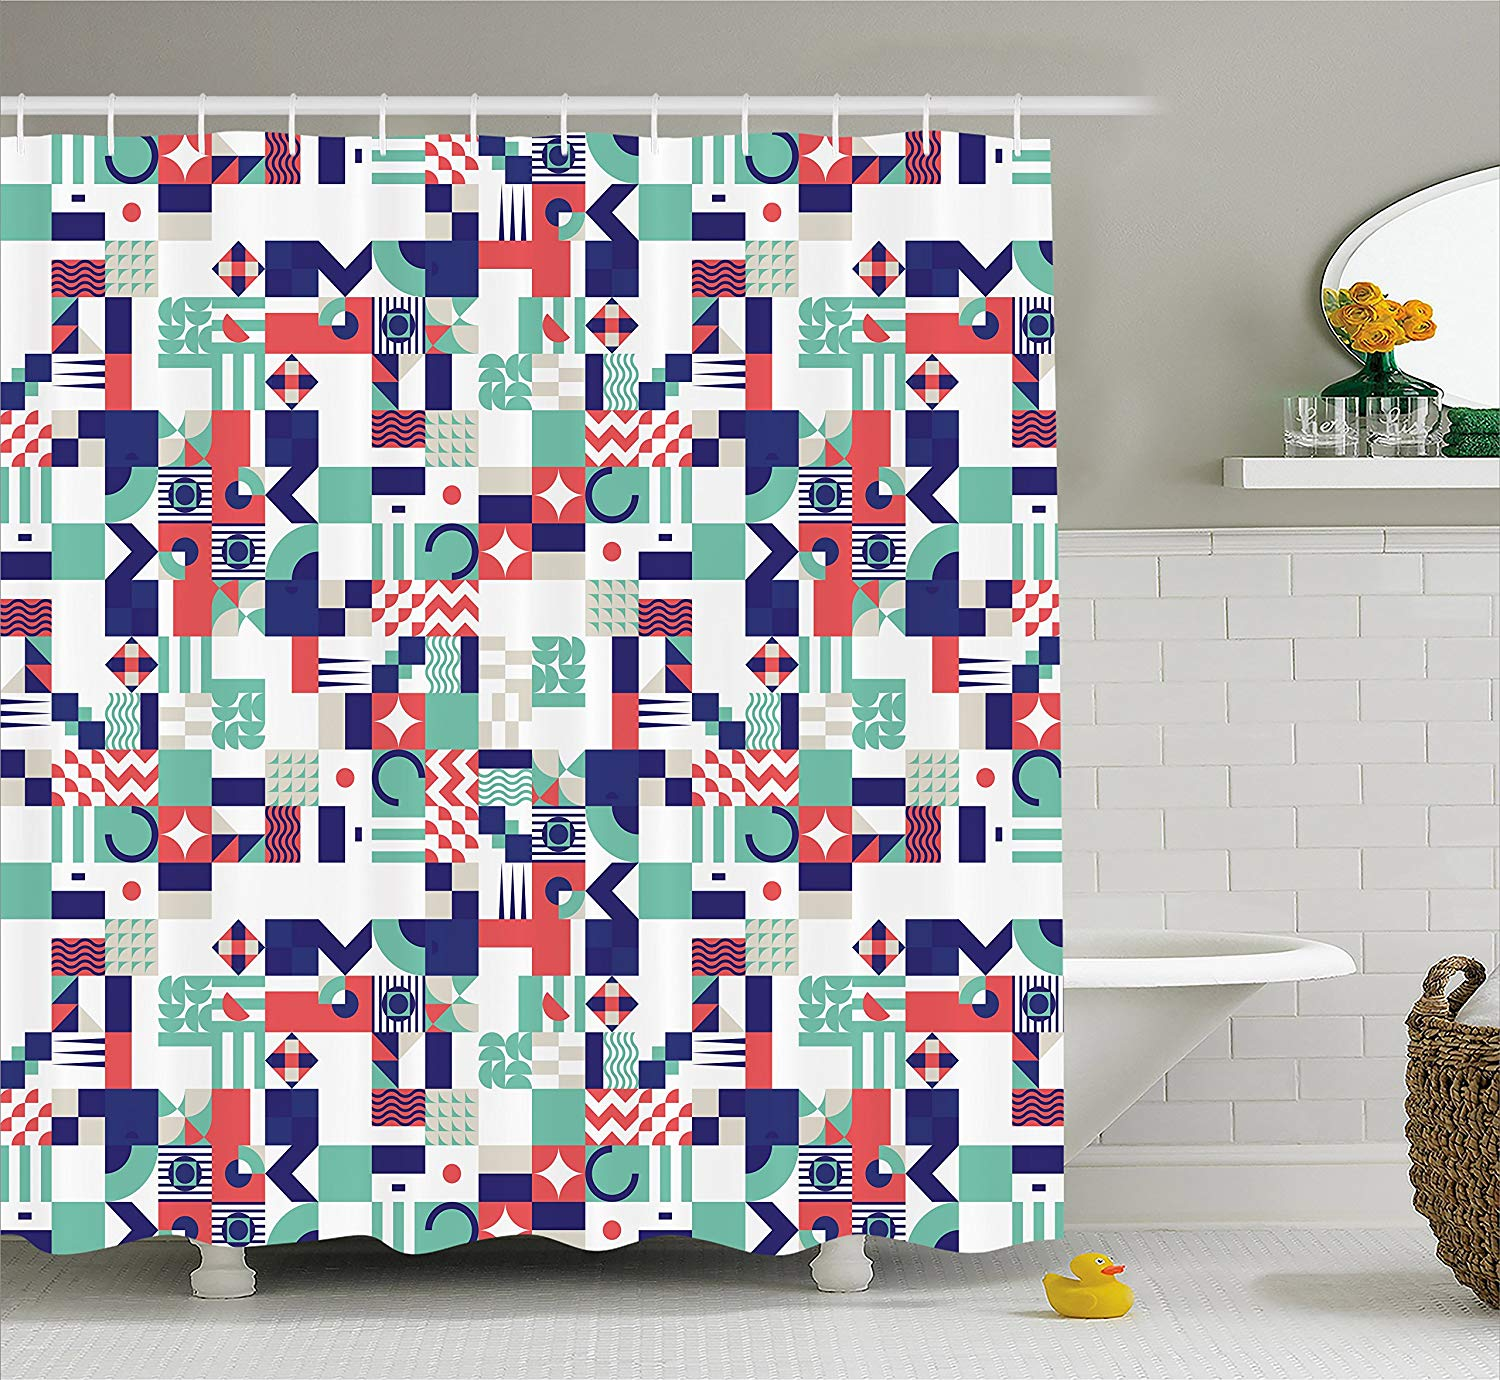 Mid Century Shower Curtain Rich Contemporary Mosaic of Funky and Pastel Shapes